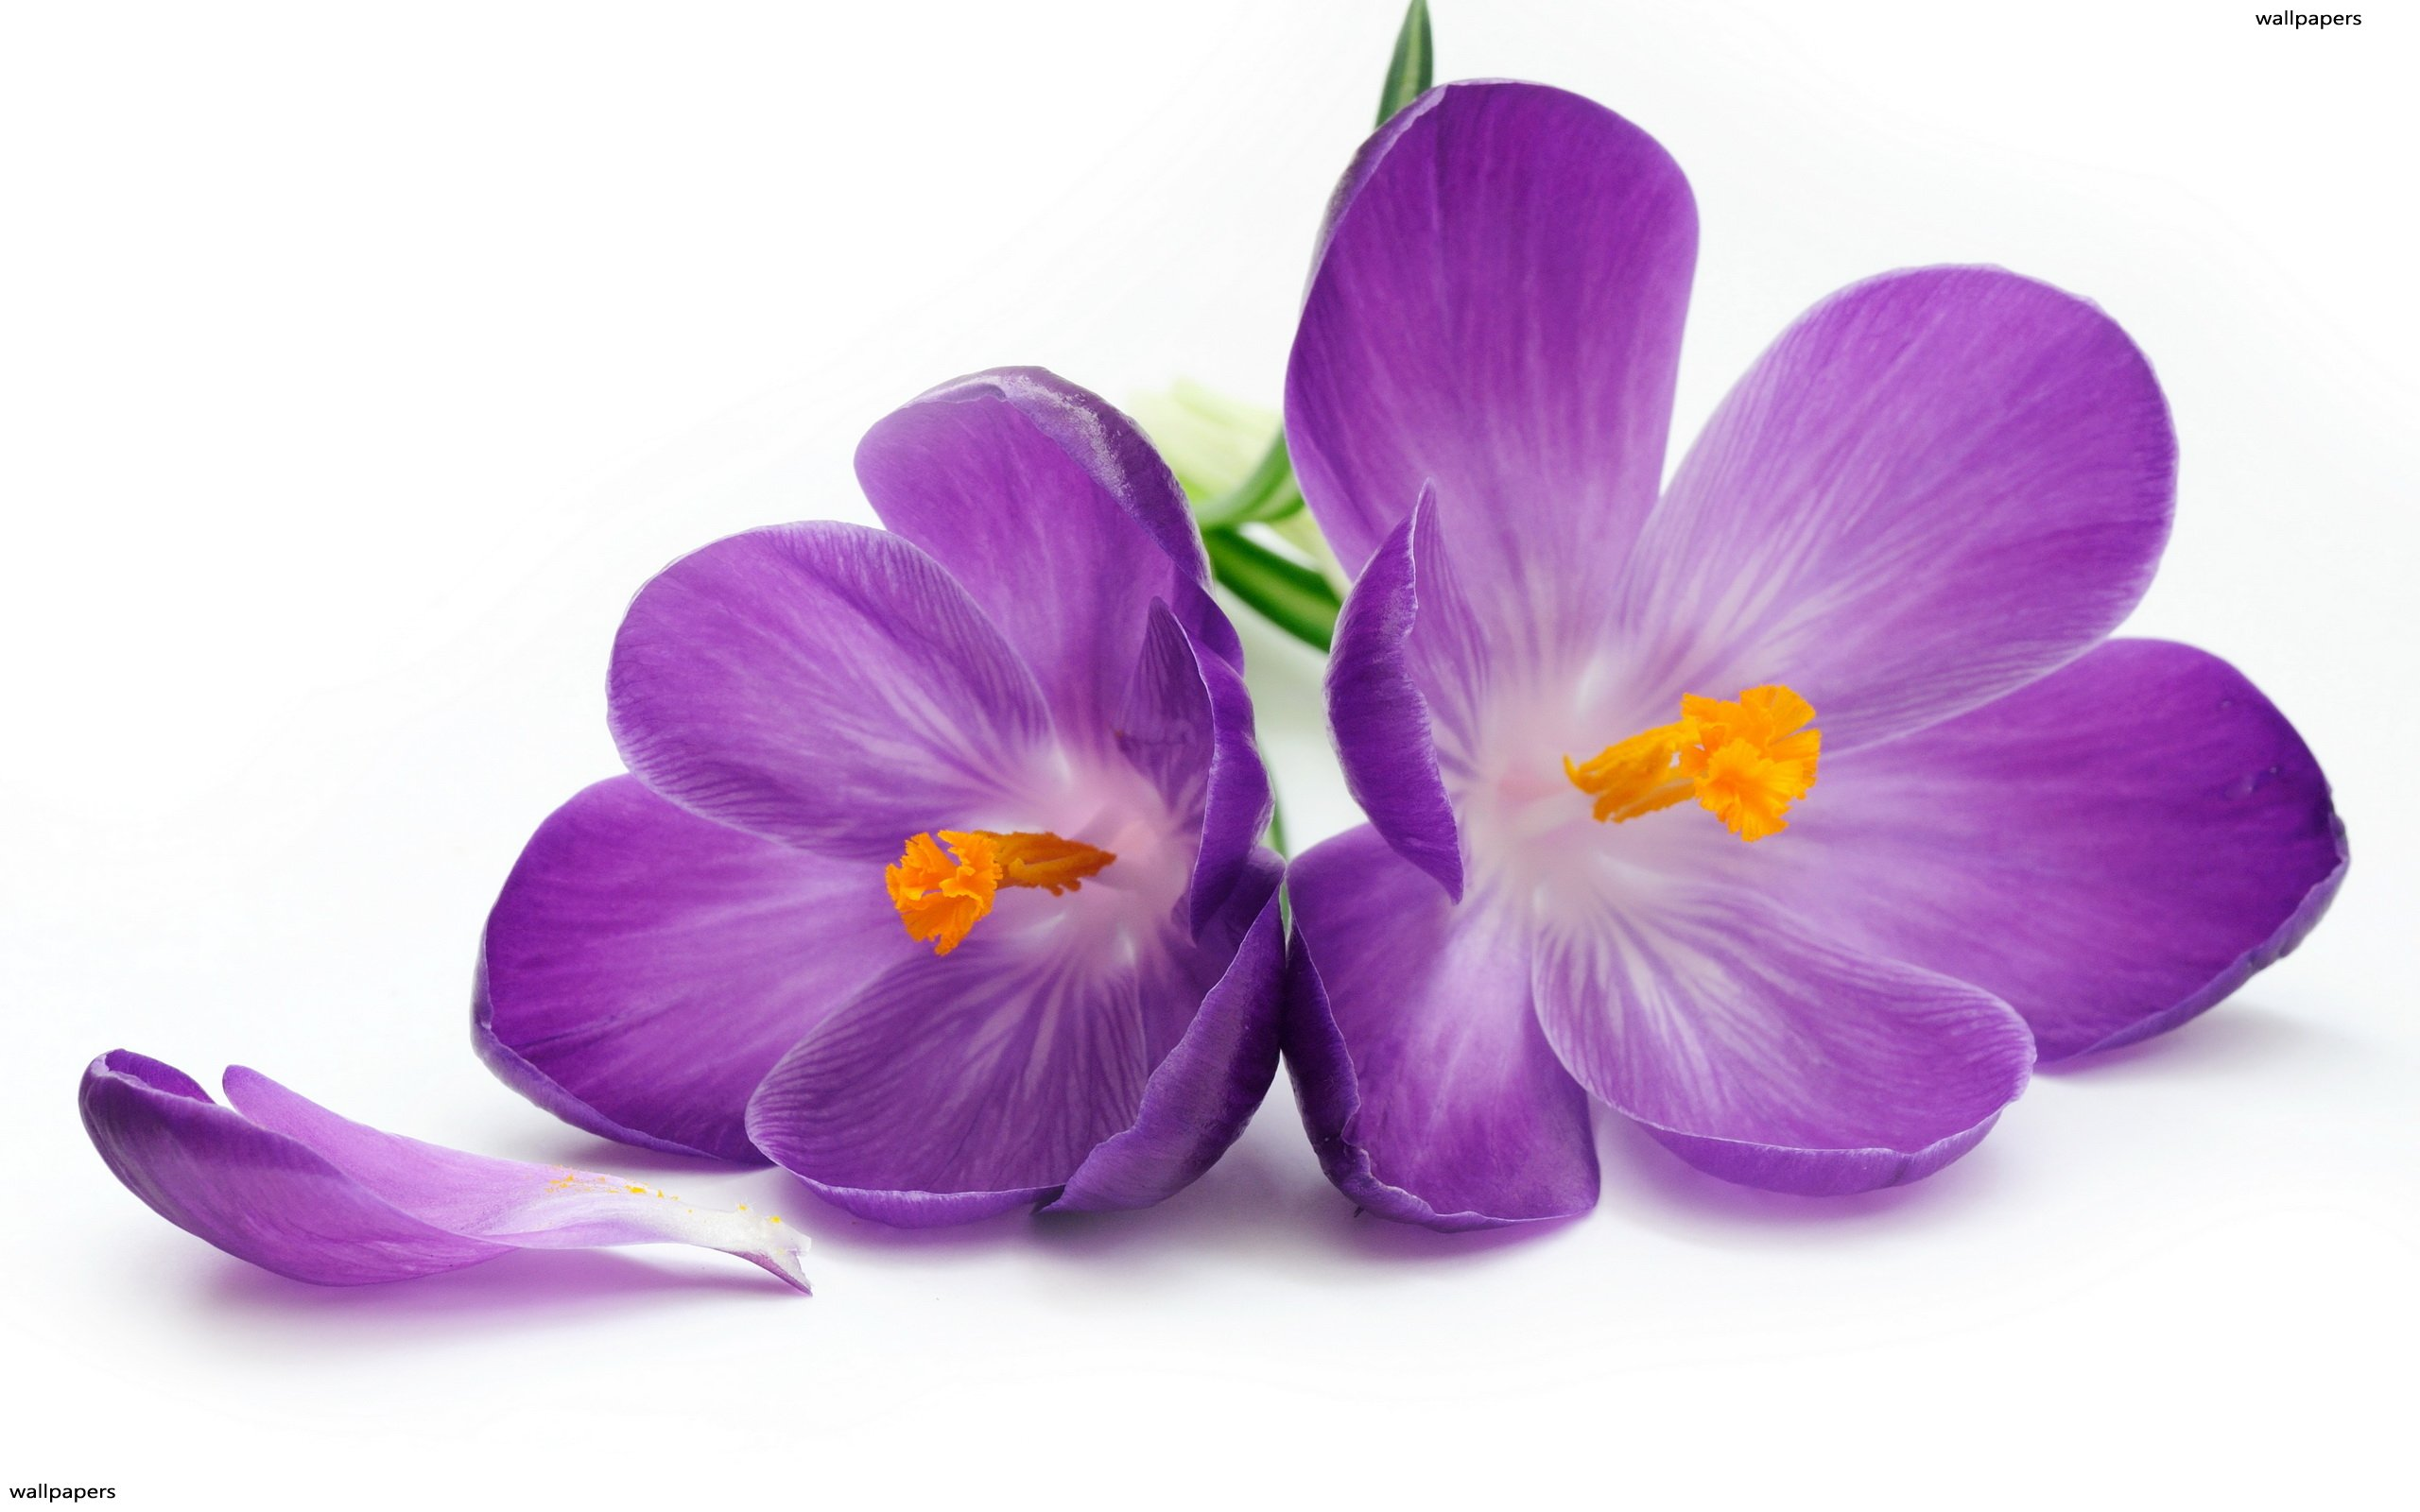 Violet Flowers Wallpaper Posted By Ryan Mercado